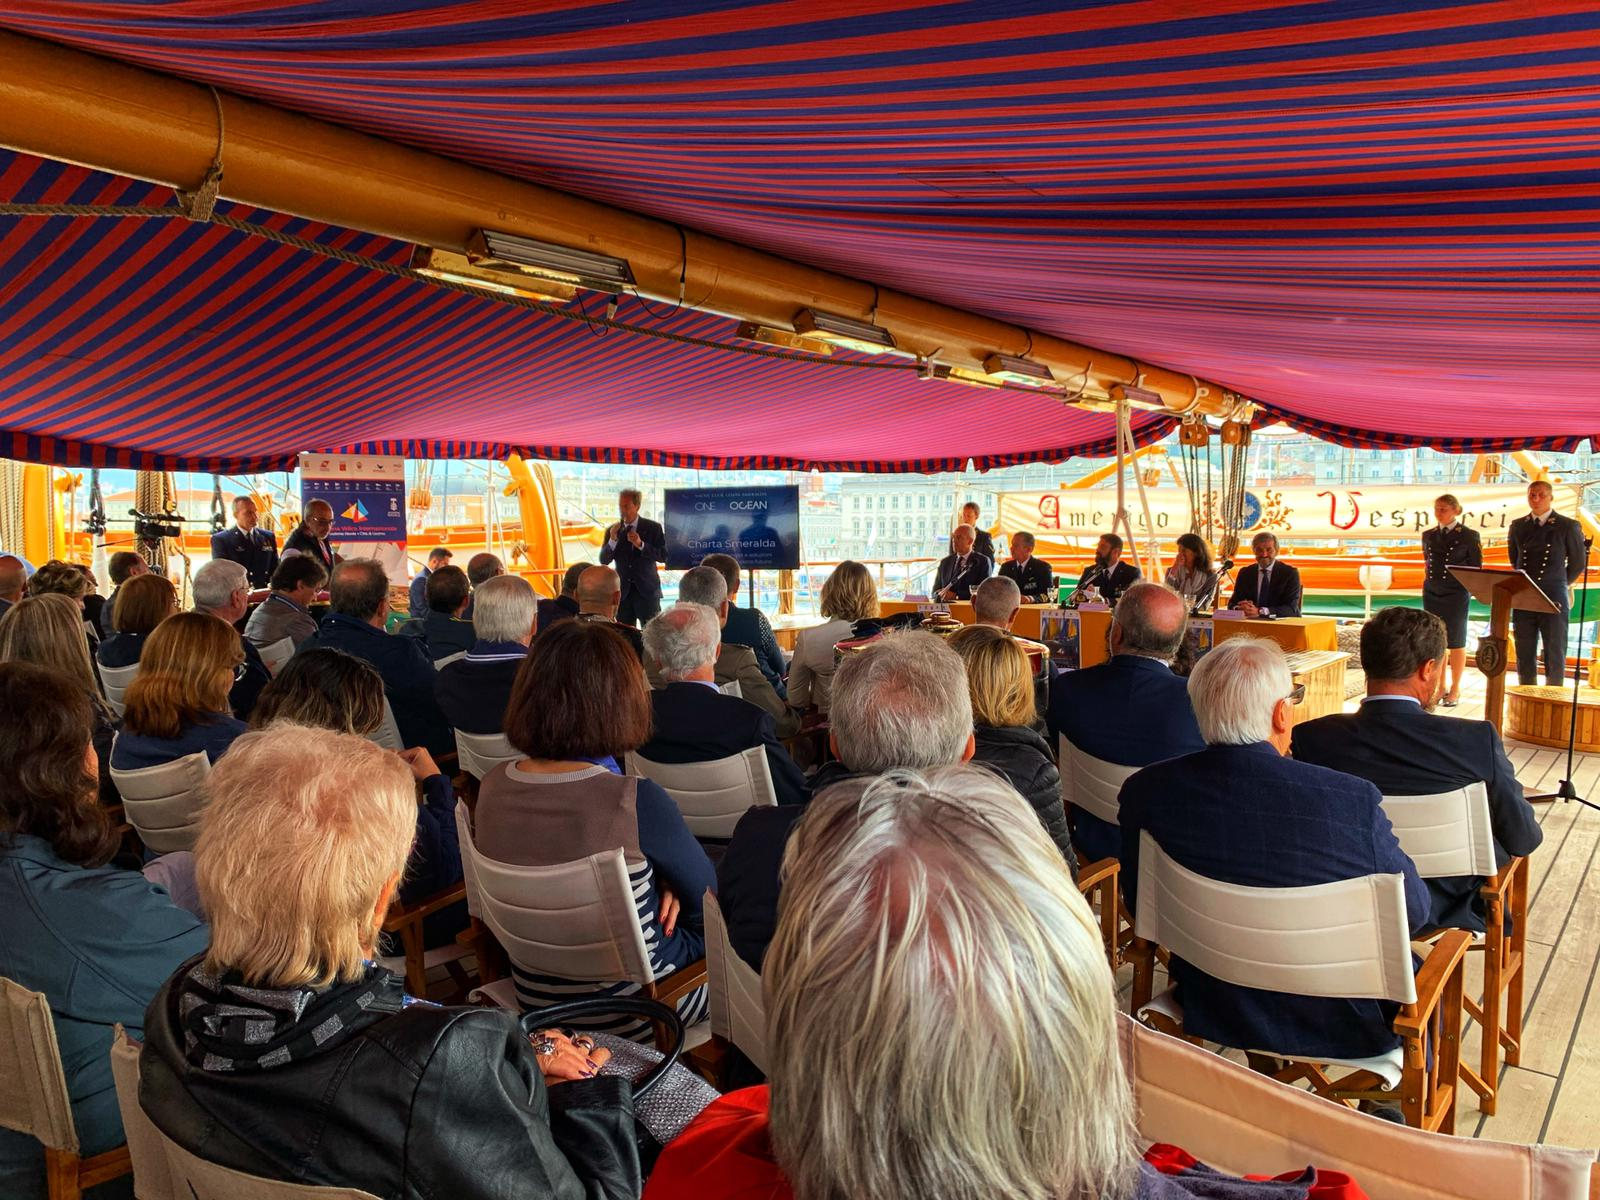 Settimana Velica Internazionale 2020 presented on Nave Vespucci  - NEWS - Yacht Club Costa Smeralda